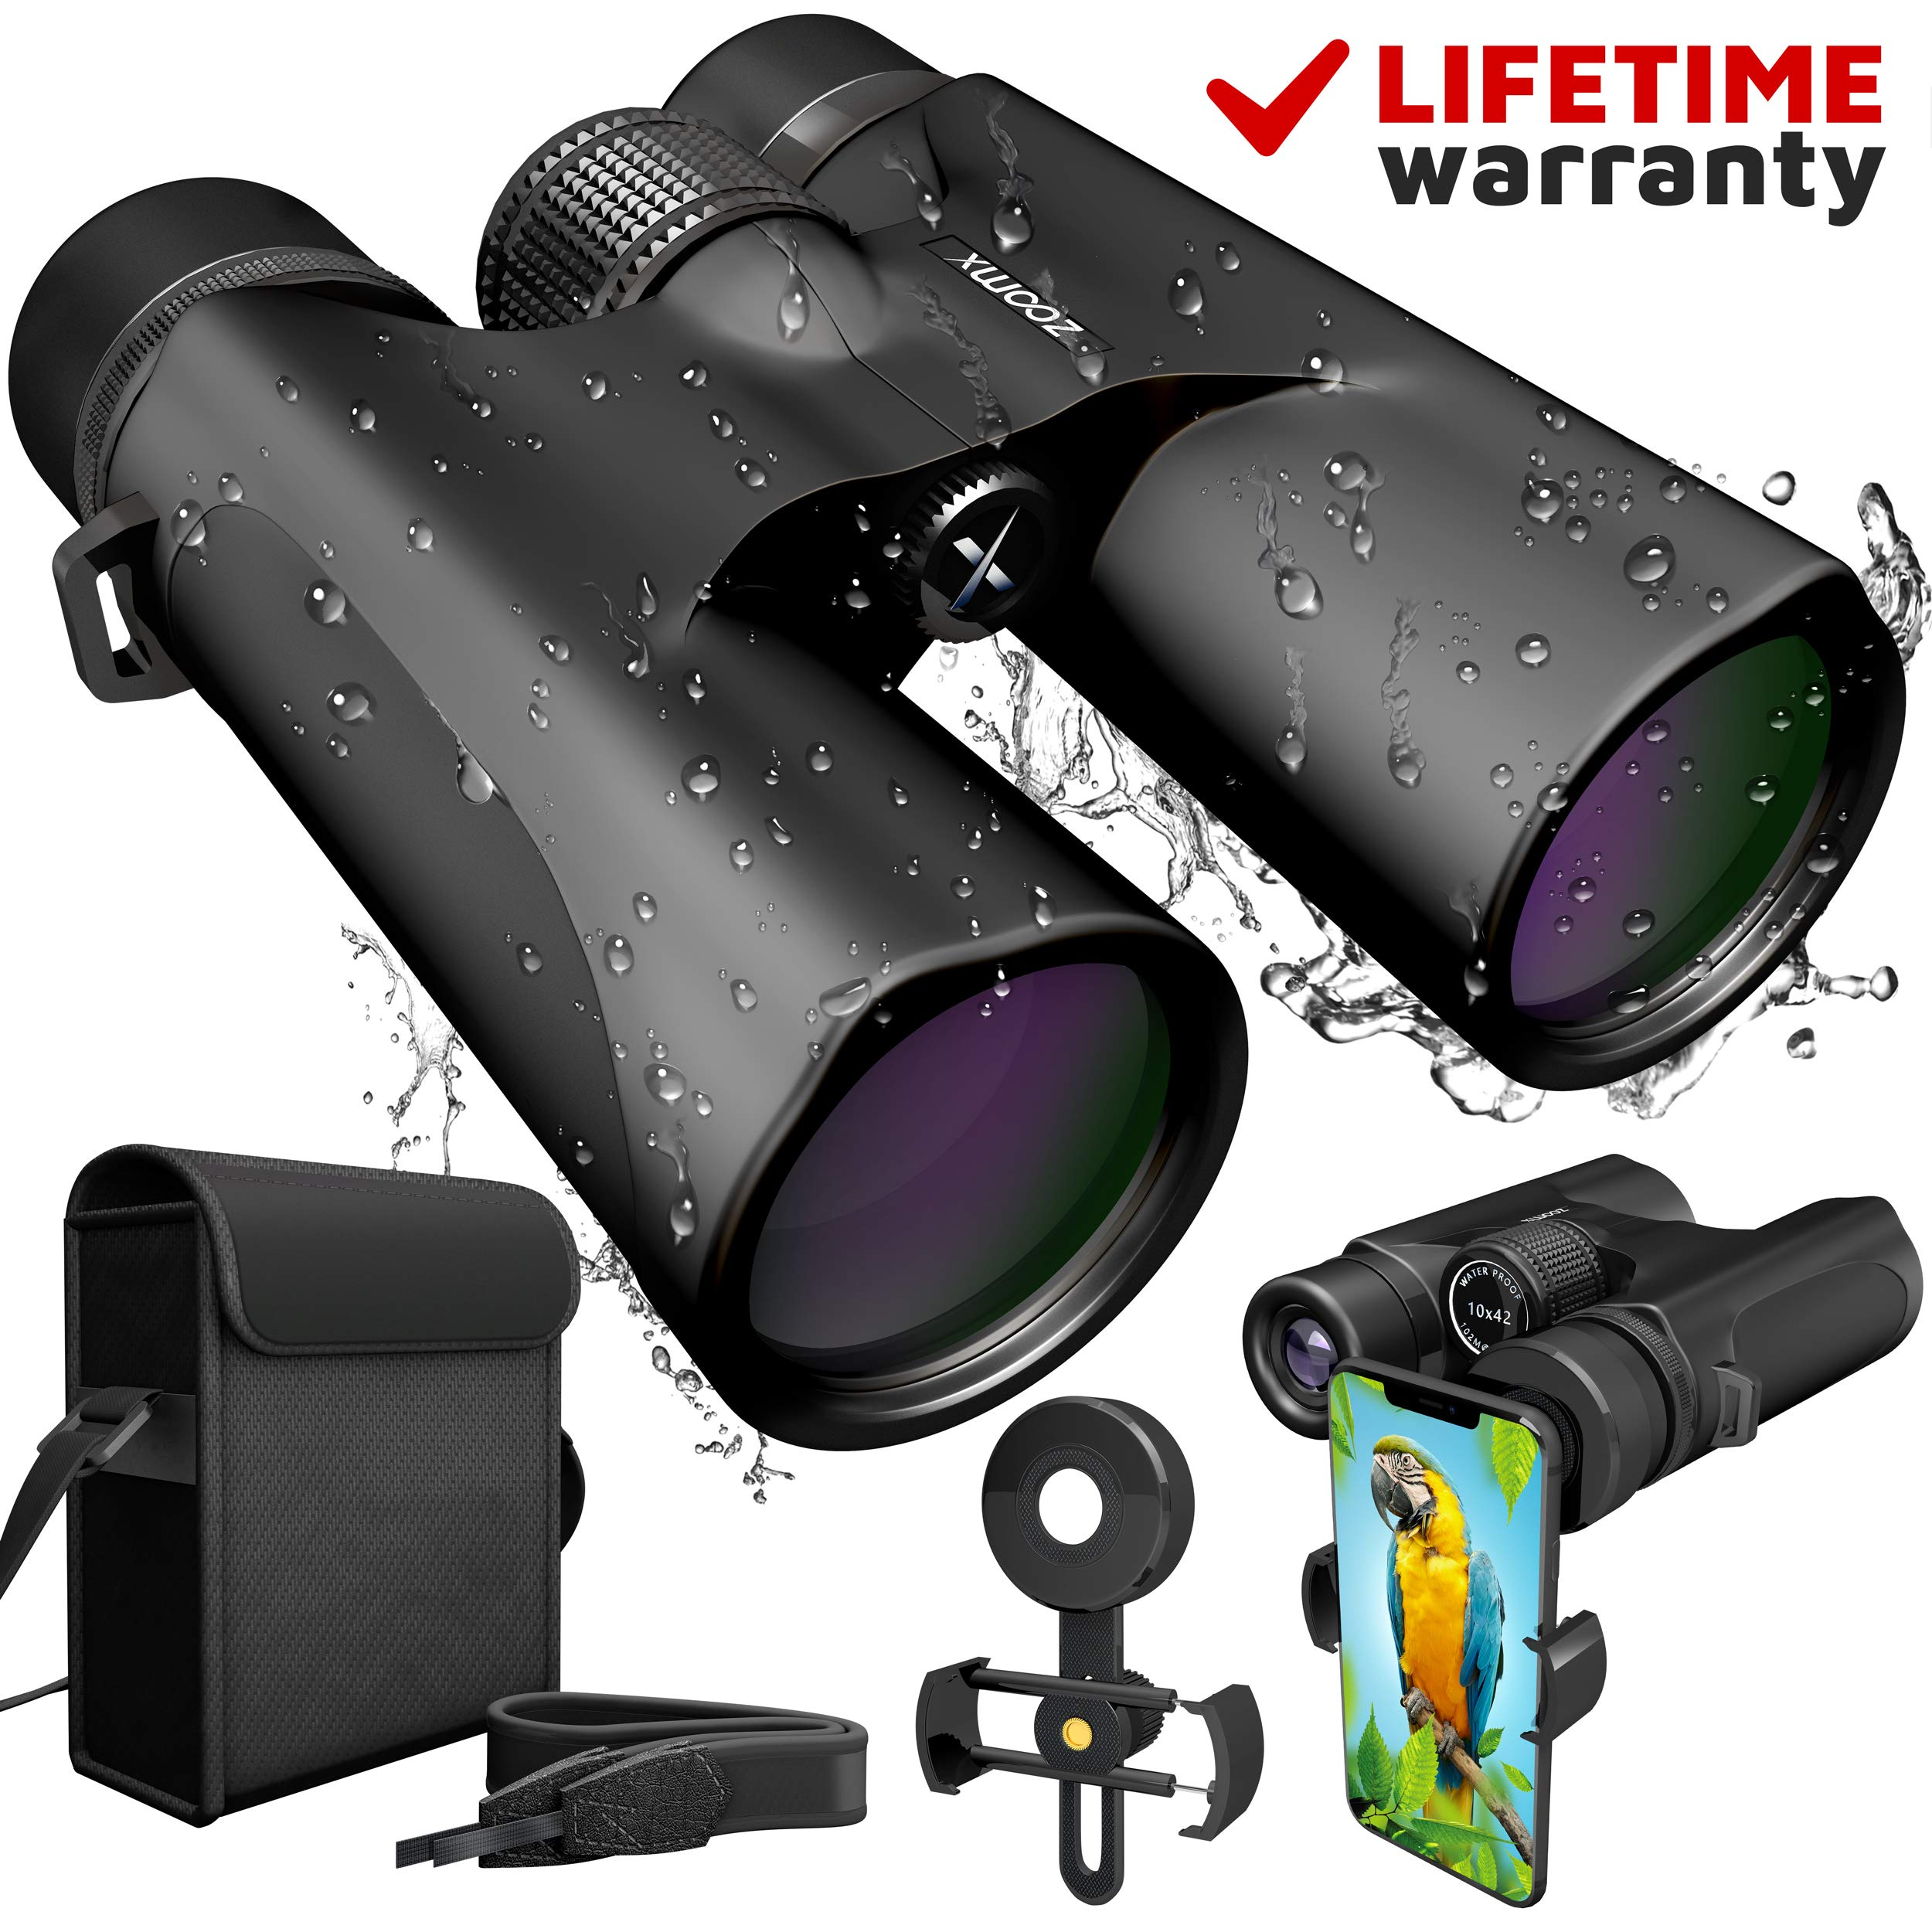 ZoomX Binoculars for Adults. 10x42 Waterproof Lightweight Compact Binocular Prism Bak4. HD Binocular for Bird Watching Hunting Traveling and Sightseeing with Smartphone Adapter, Grey by ZoomX